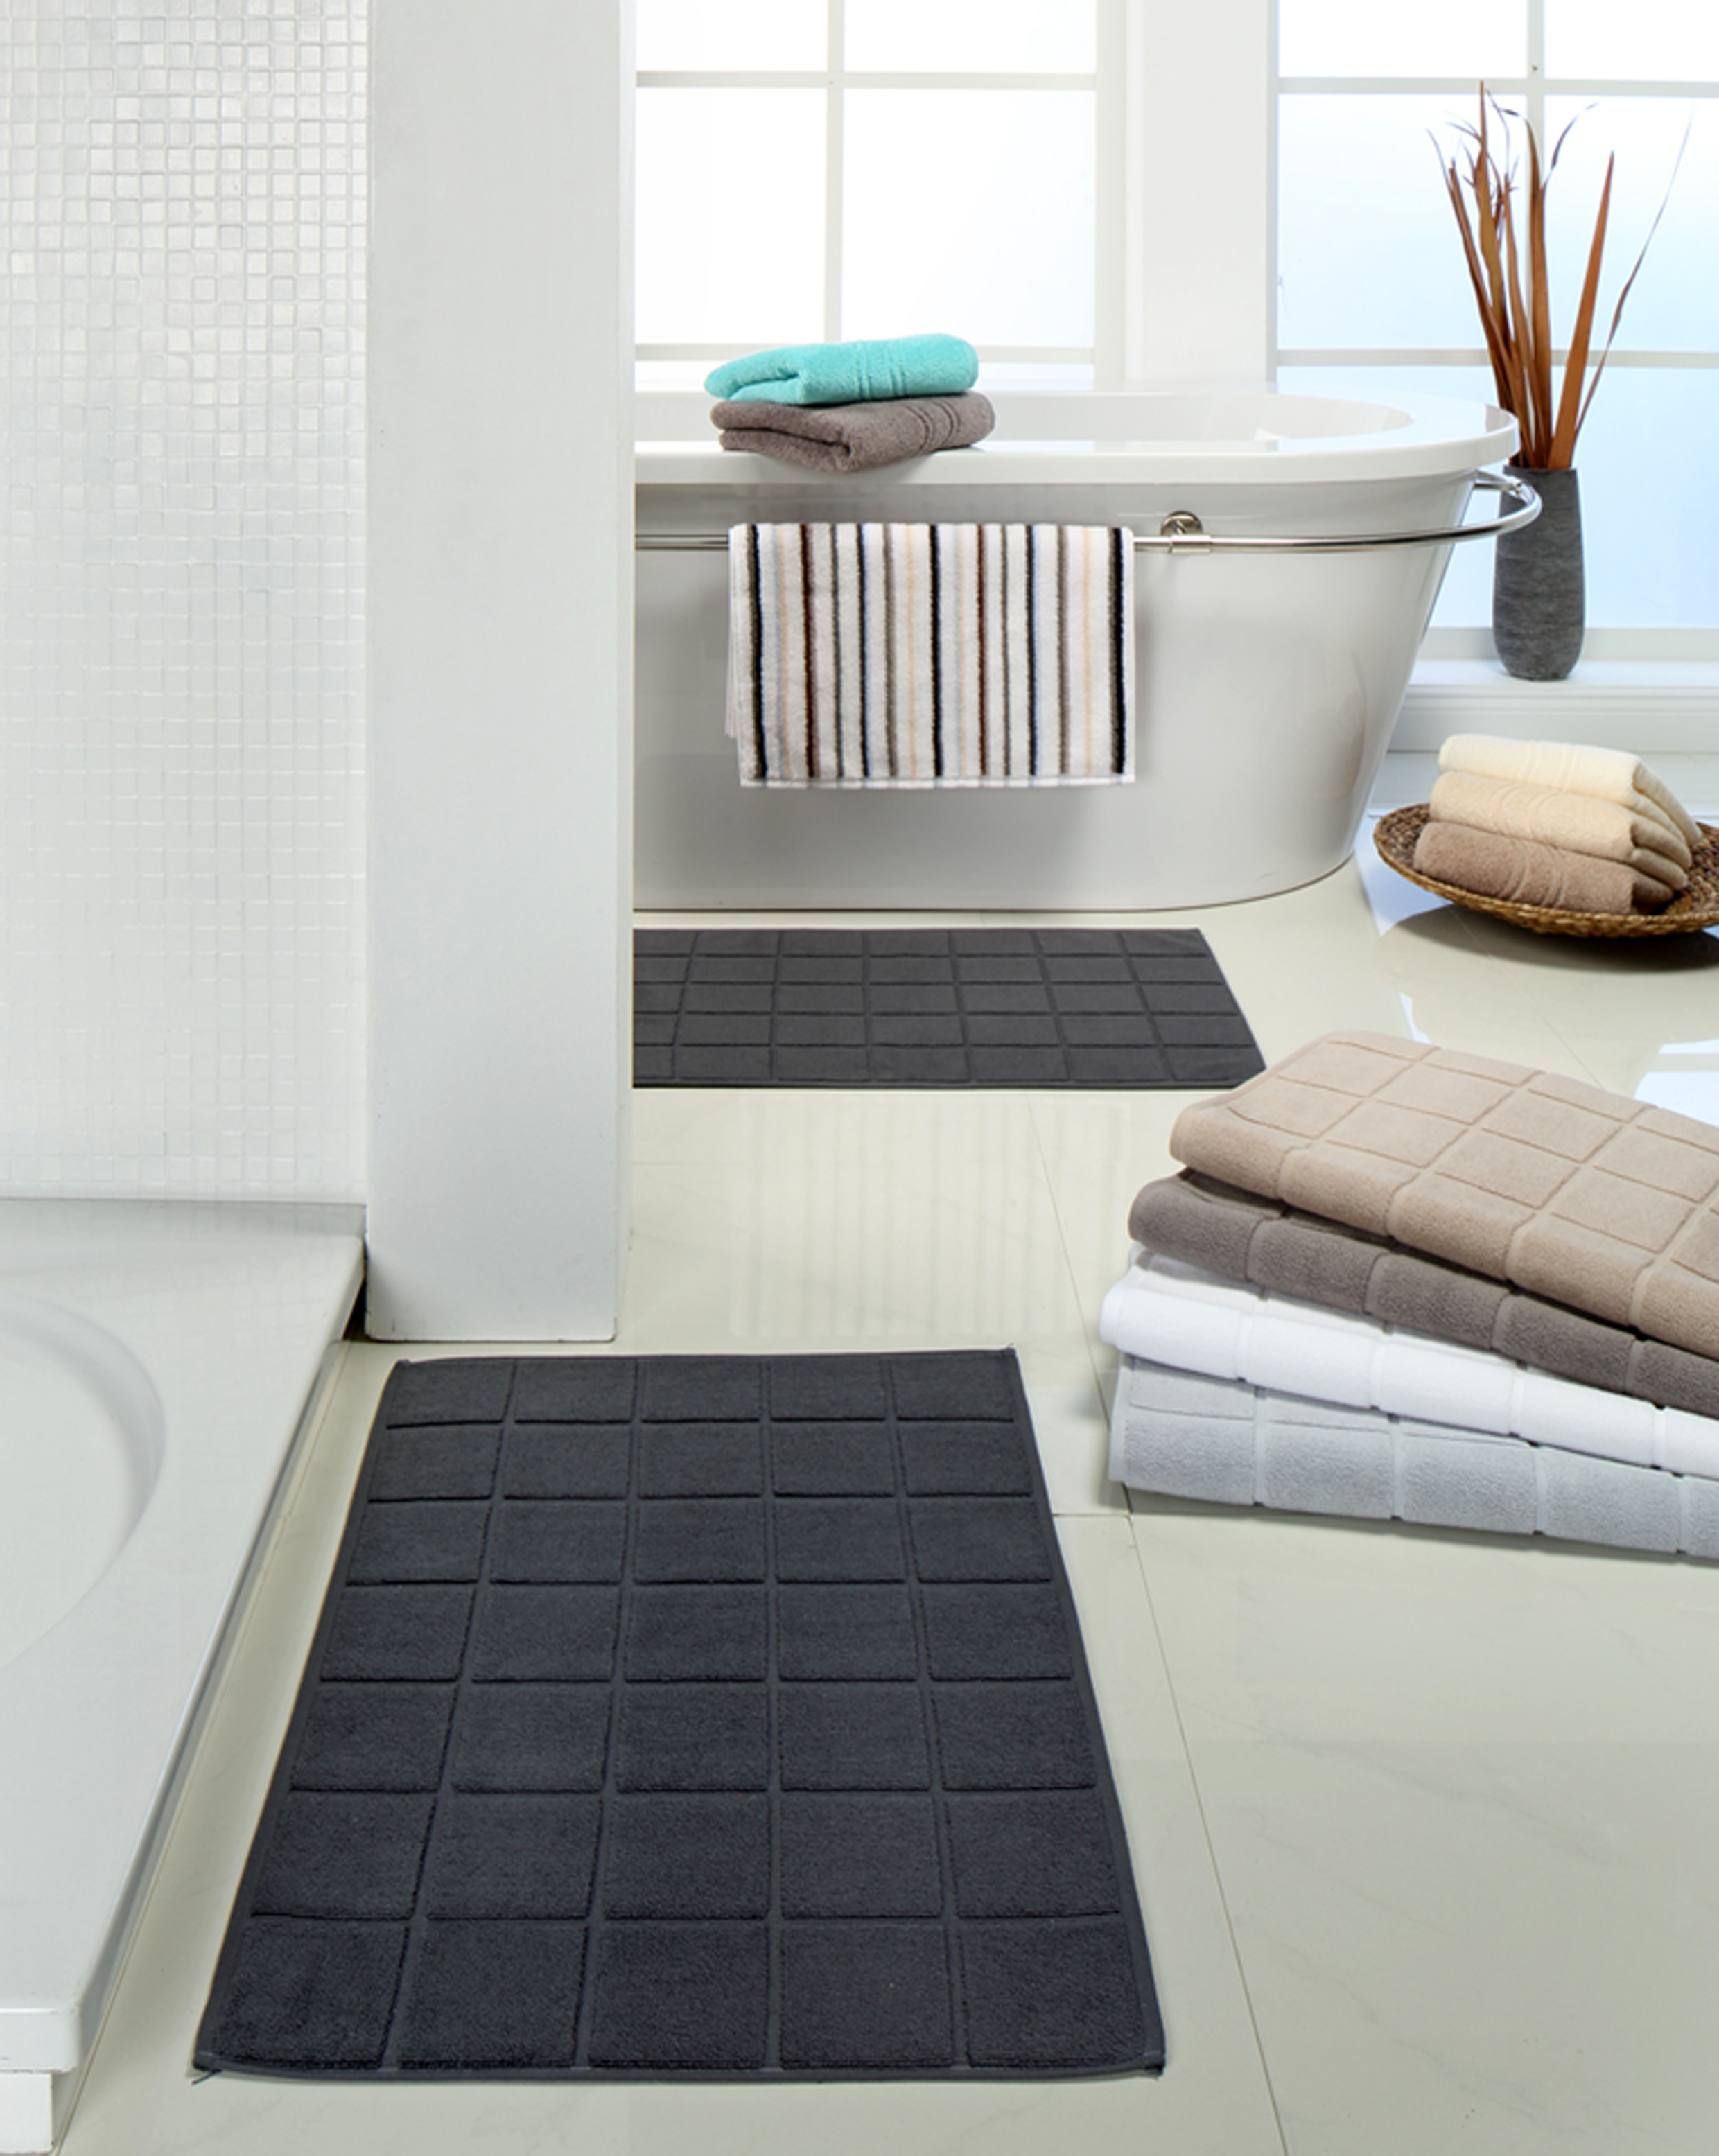 Electric Bathroom Floor Mats 28 Images 25 Best Ideas About Electric Underfloor Heating On